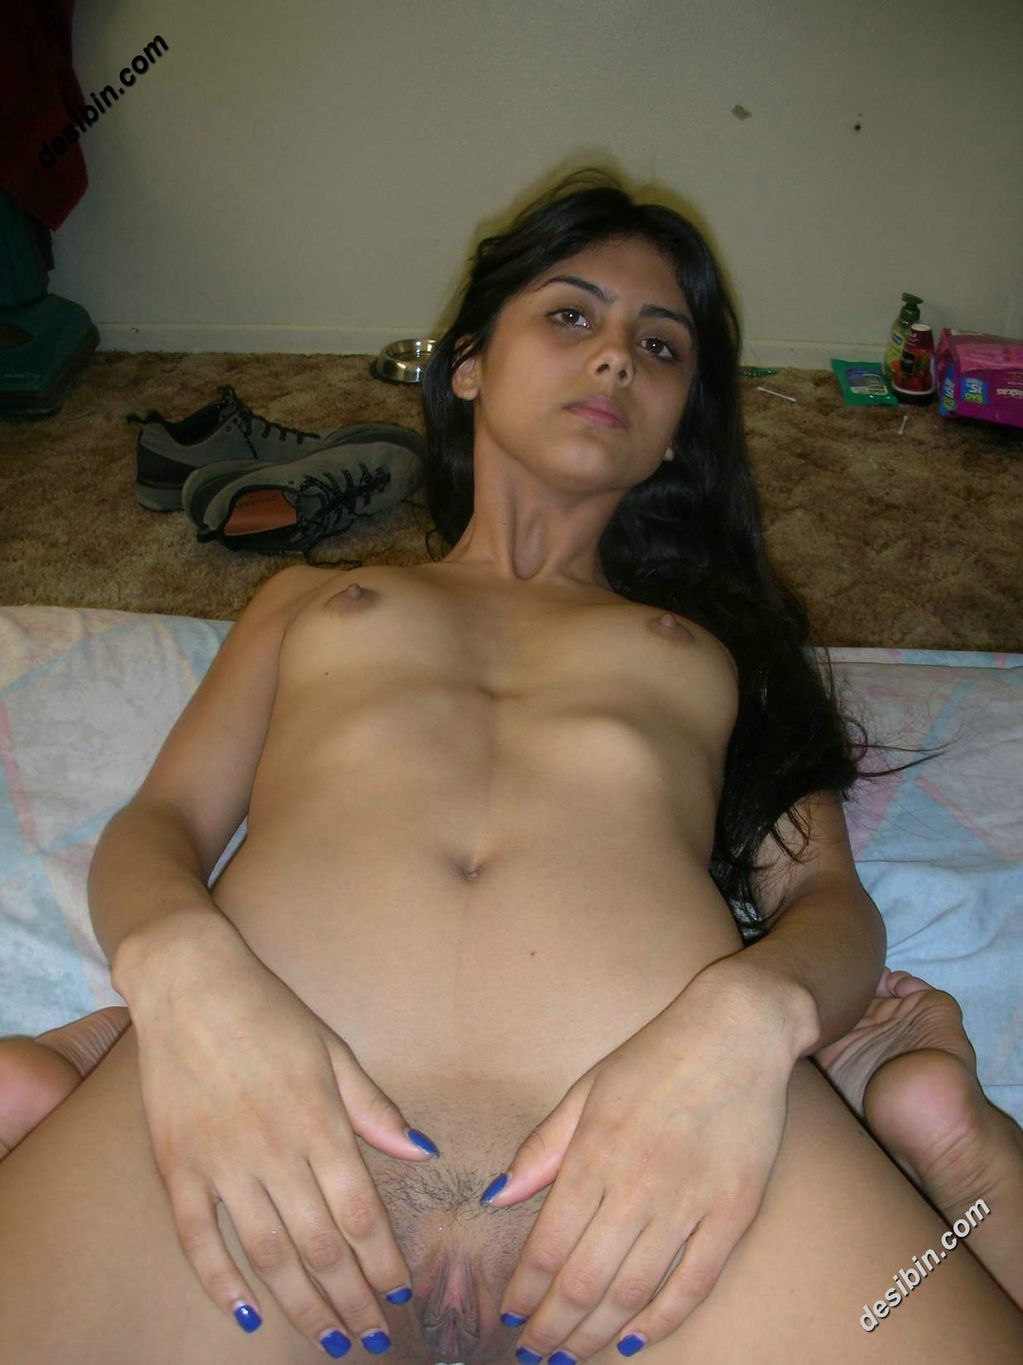 Sounds Nude sexy porn kerala girls words... fantasy